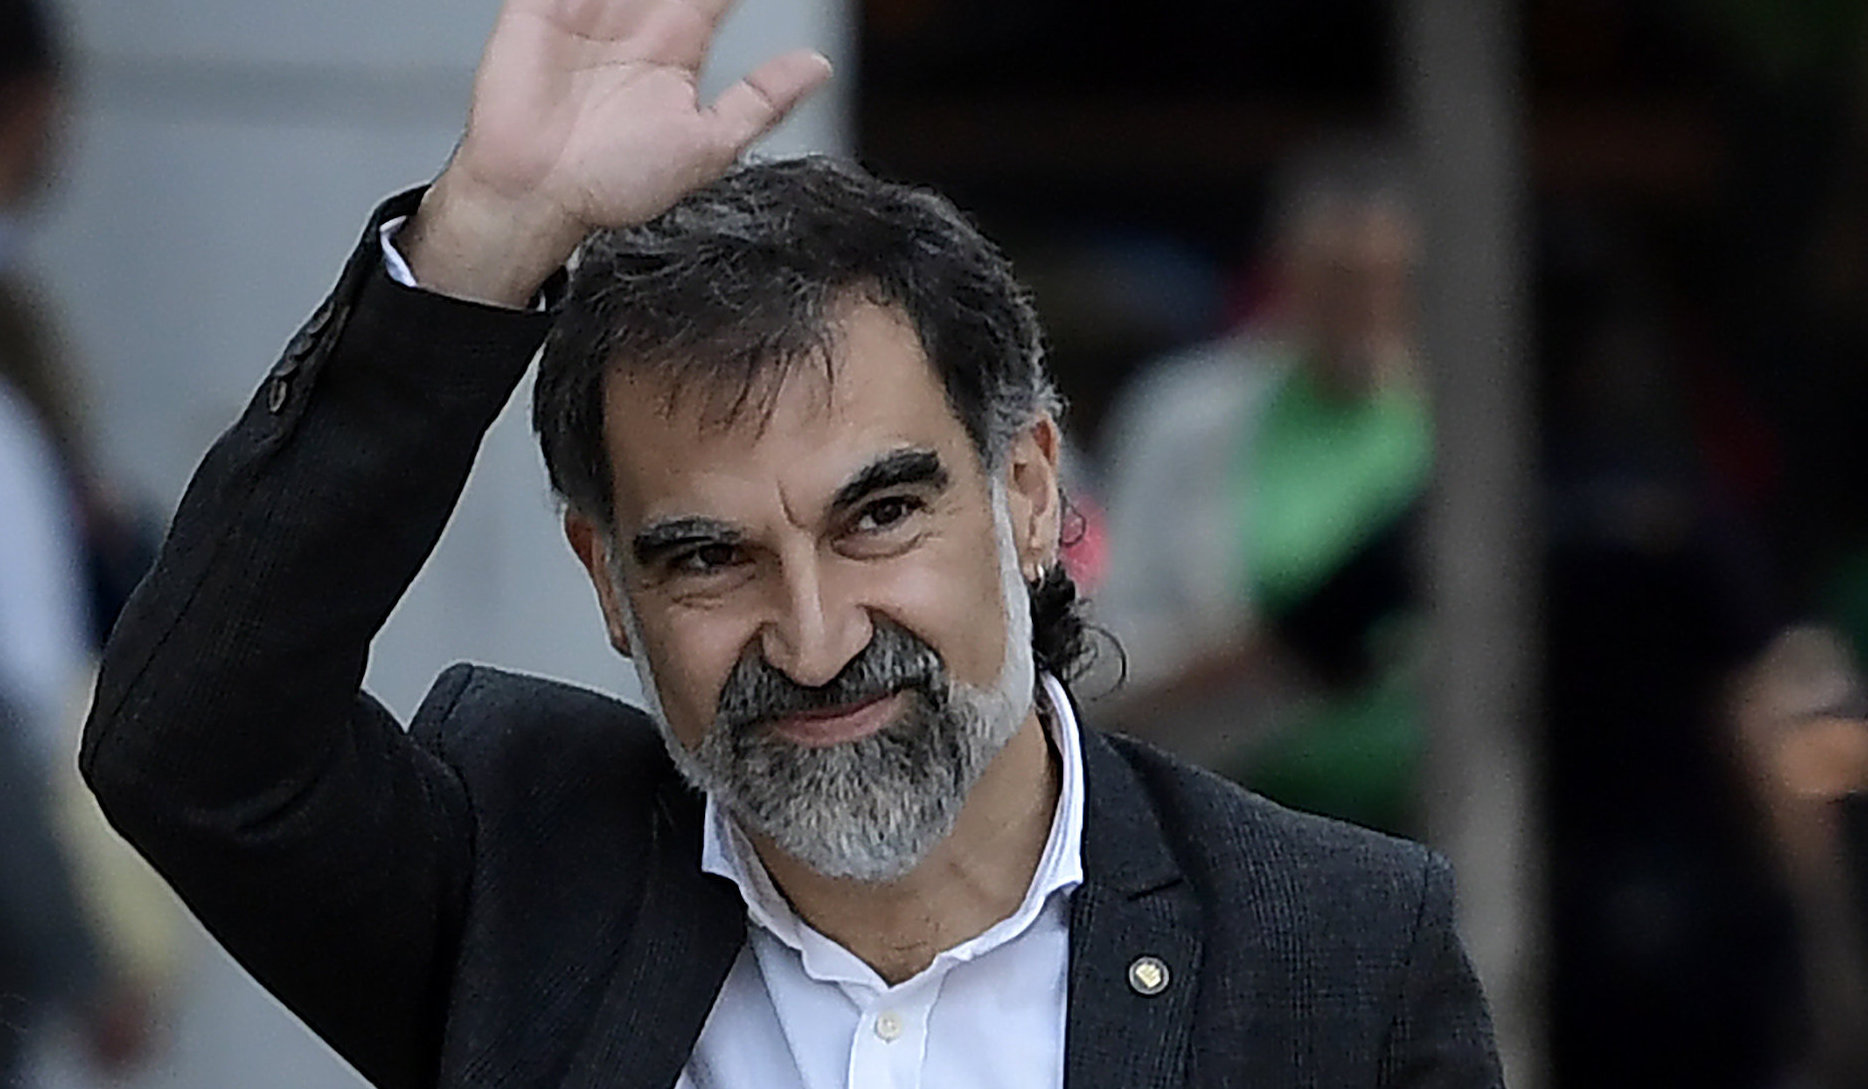 Jordi Cuixart has spent the past year locked up awaiting trial